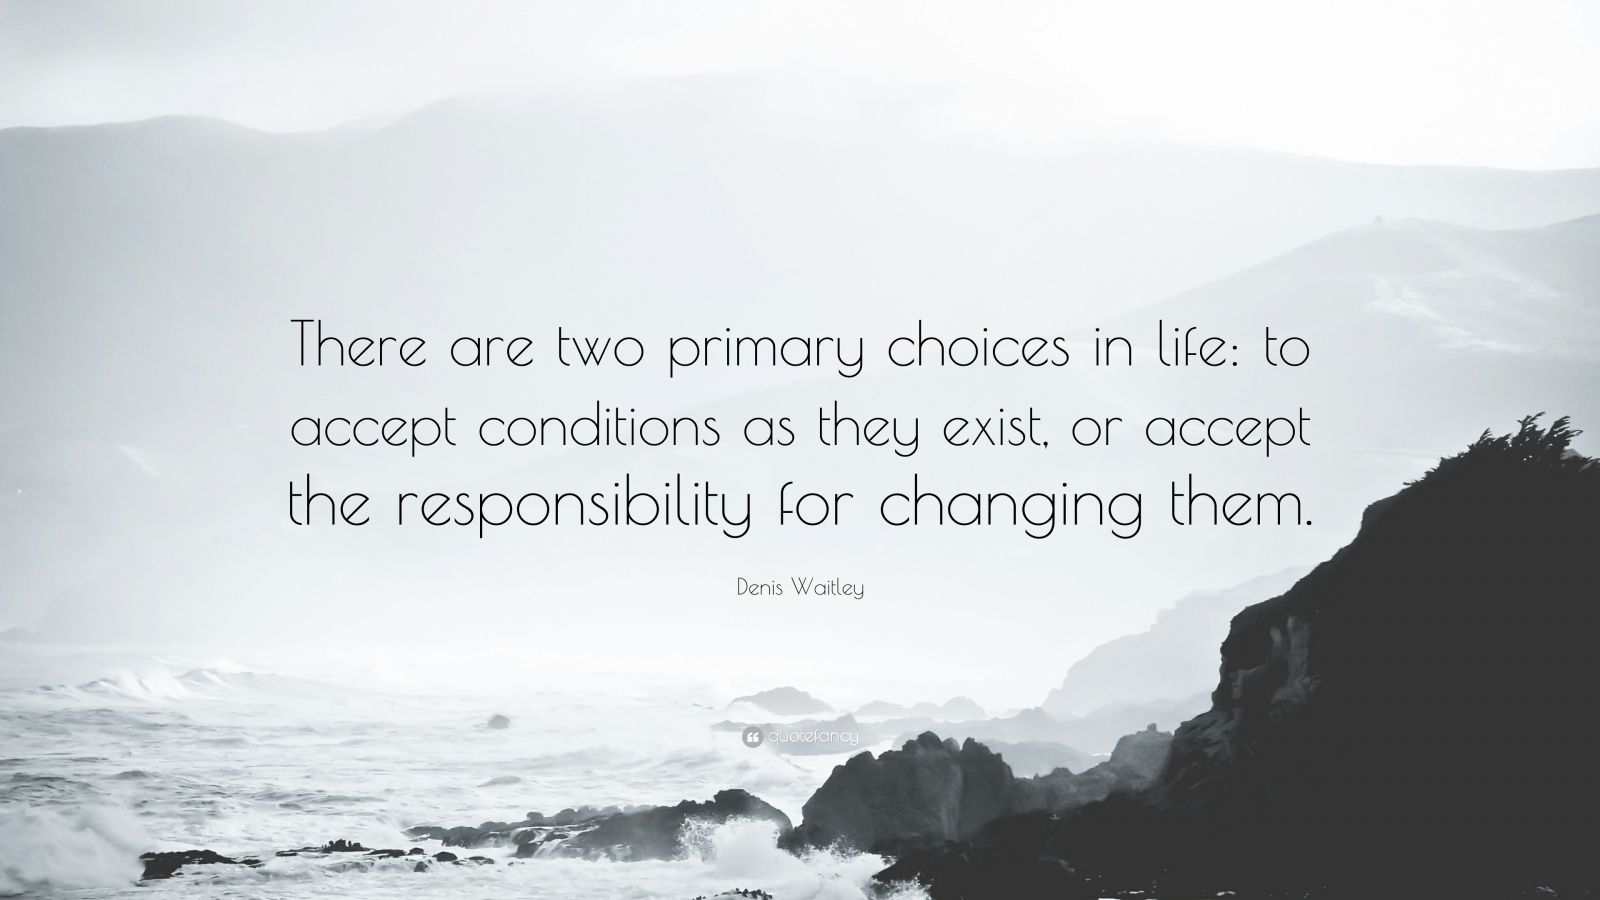 "Responsibility Quotes: ""There are two primary choices in life: to accept conditions as they exist, or accept the responsibility for changing them."" — Denis Waitley"